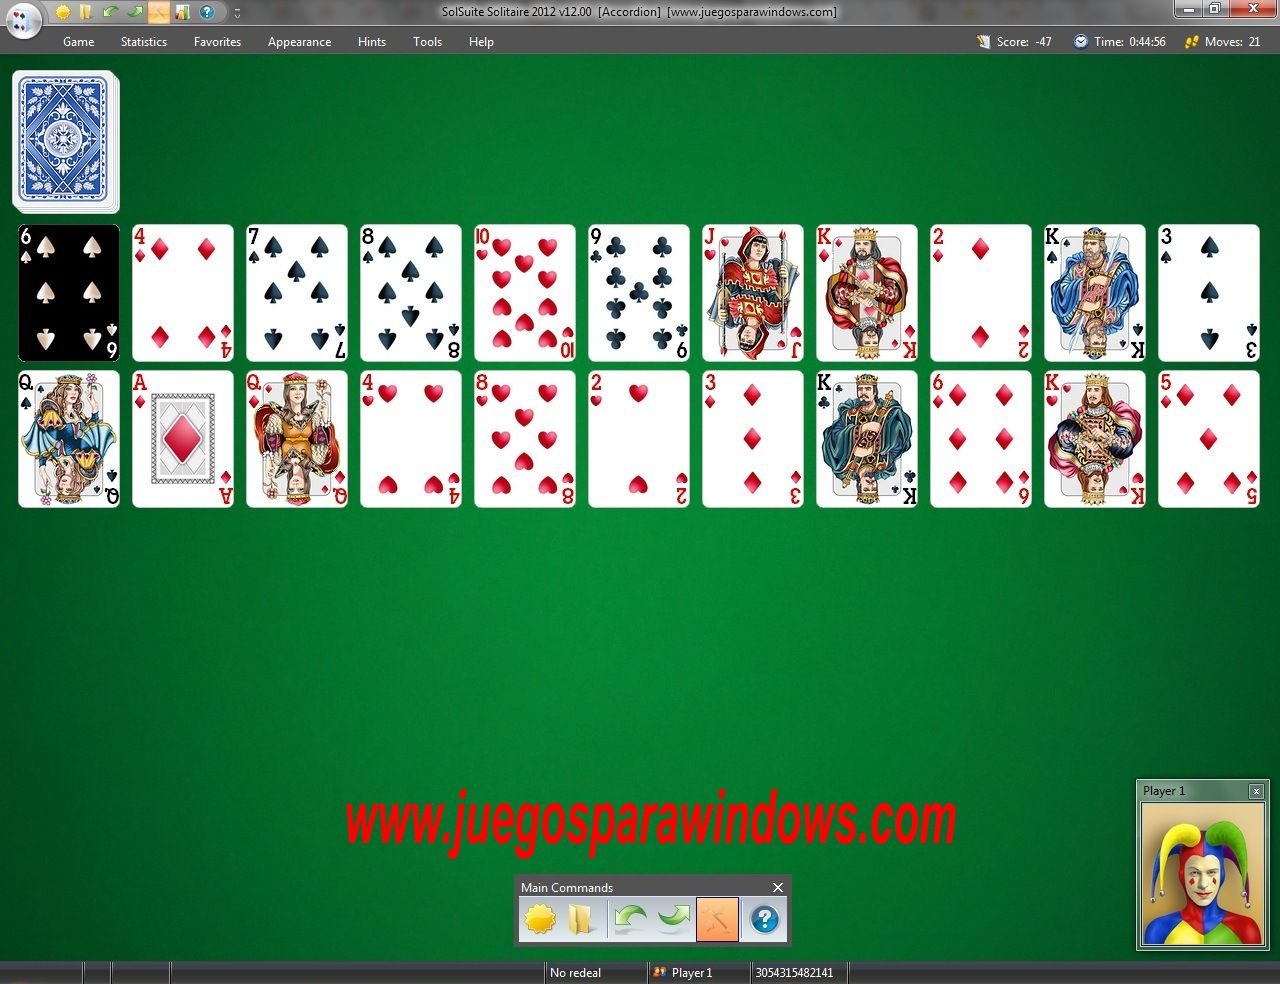 SolSuite Solitaire 2012 PC Screenshot